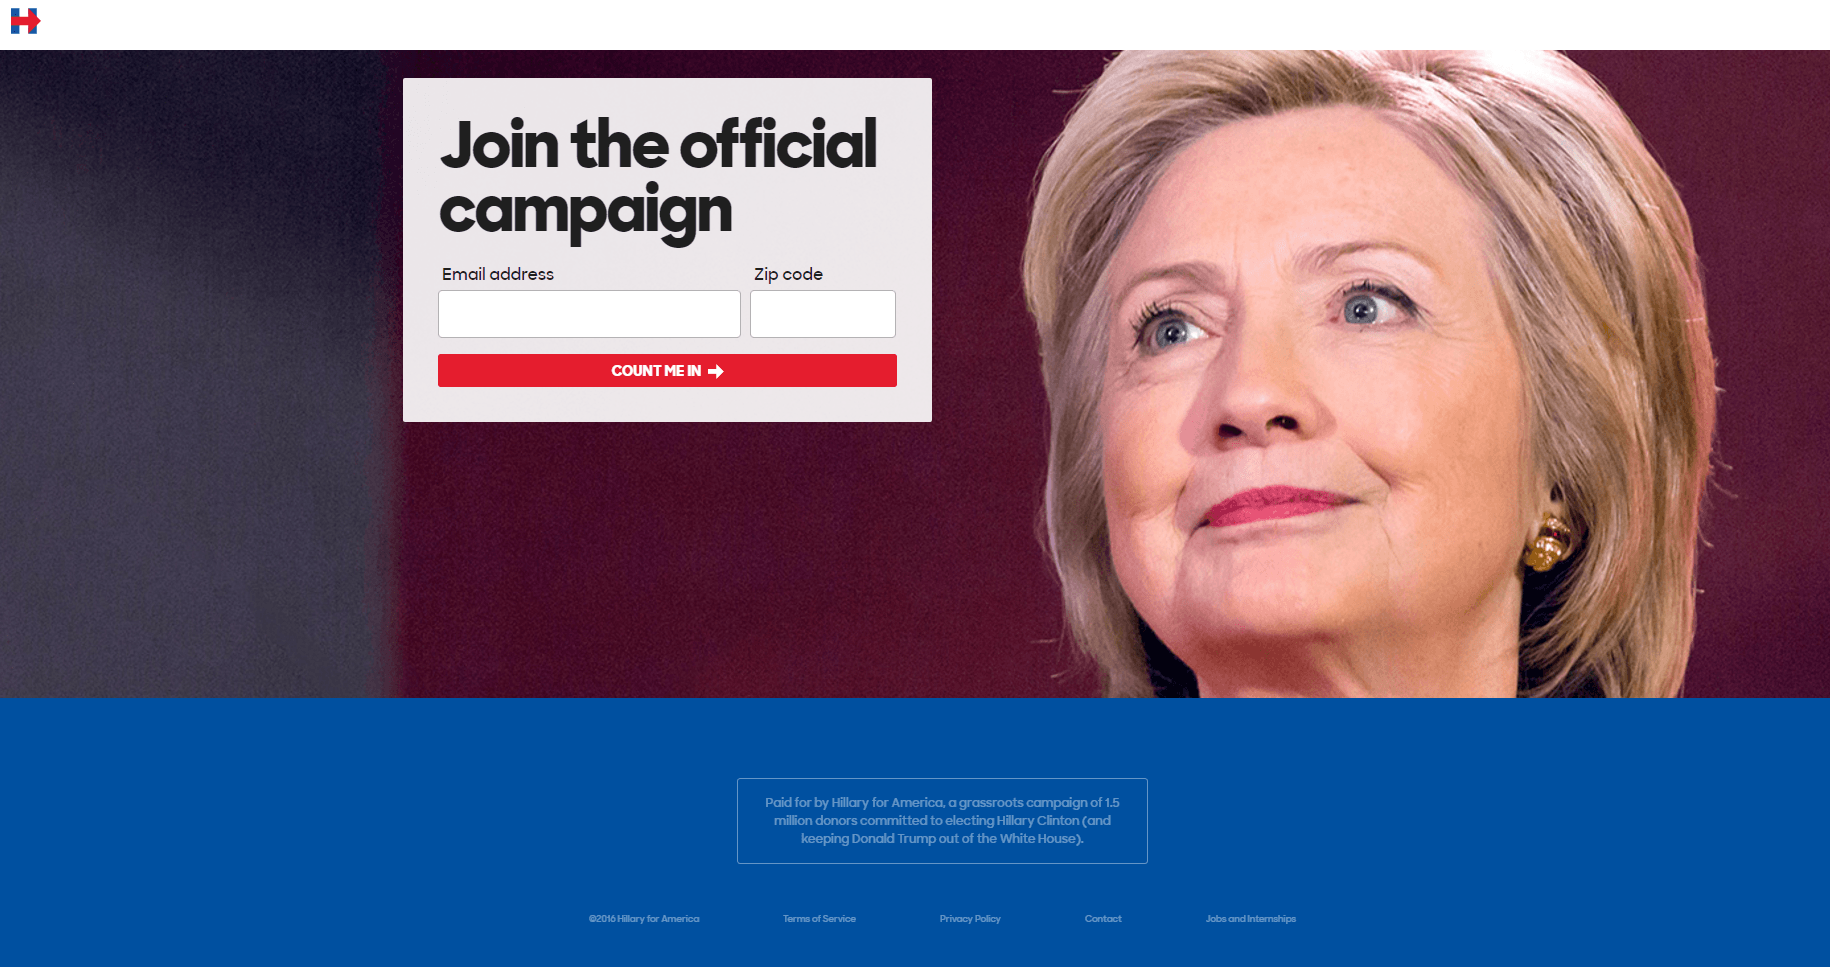 This picture shows marketers how Hillary Clinton uses a visual cue to generate new email subscribers and increase engagement among her supporters.